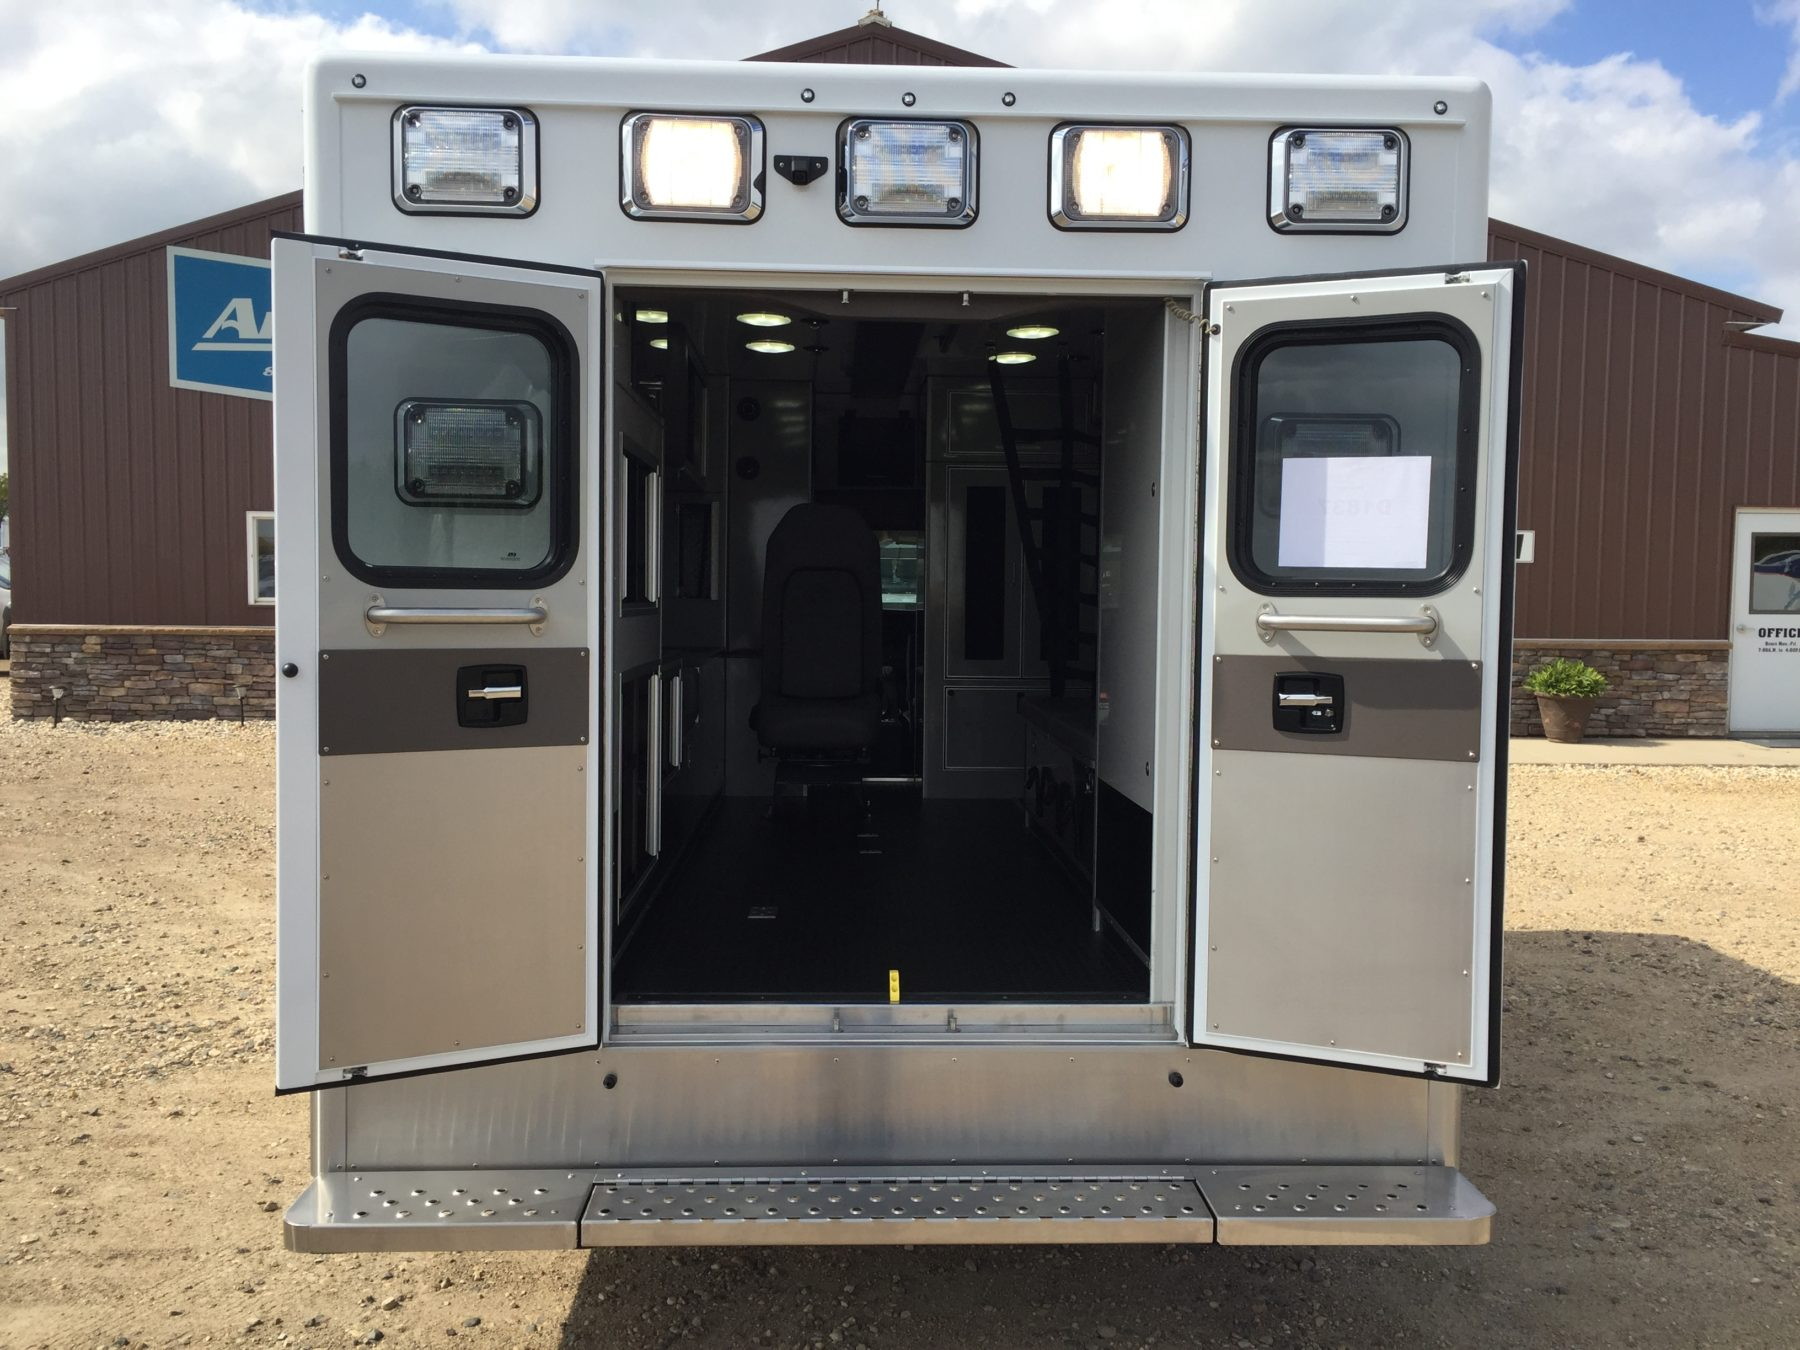 2019 Chevrolet G4500 Type 3 Ambulance For Sale – Picture 9